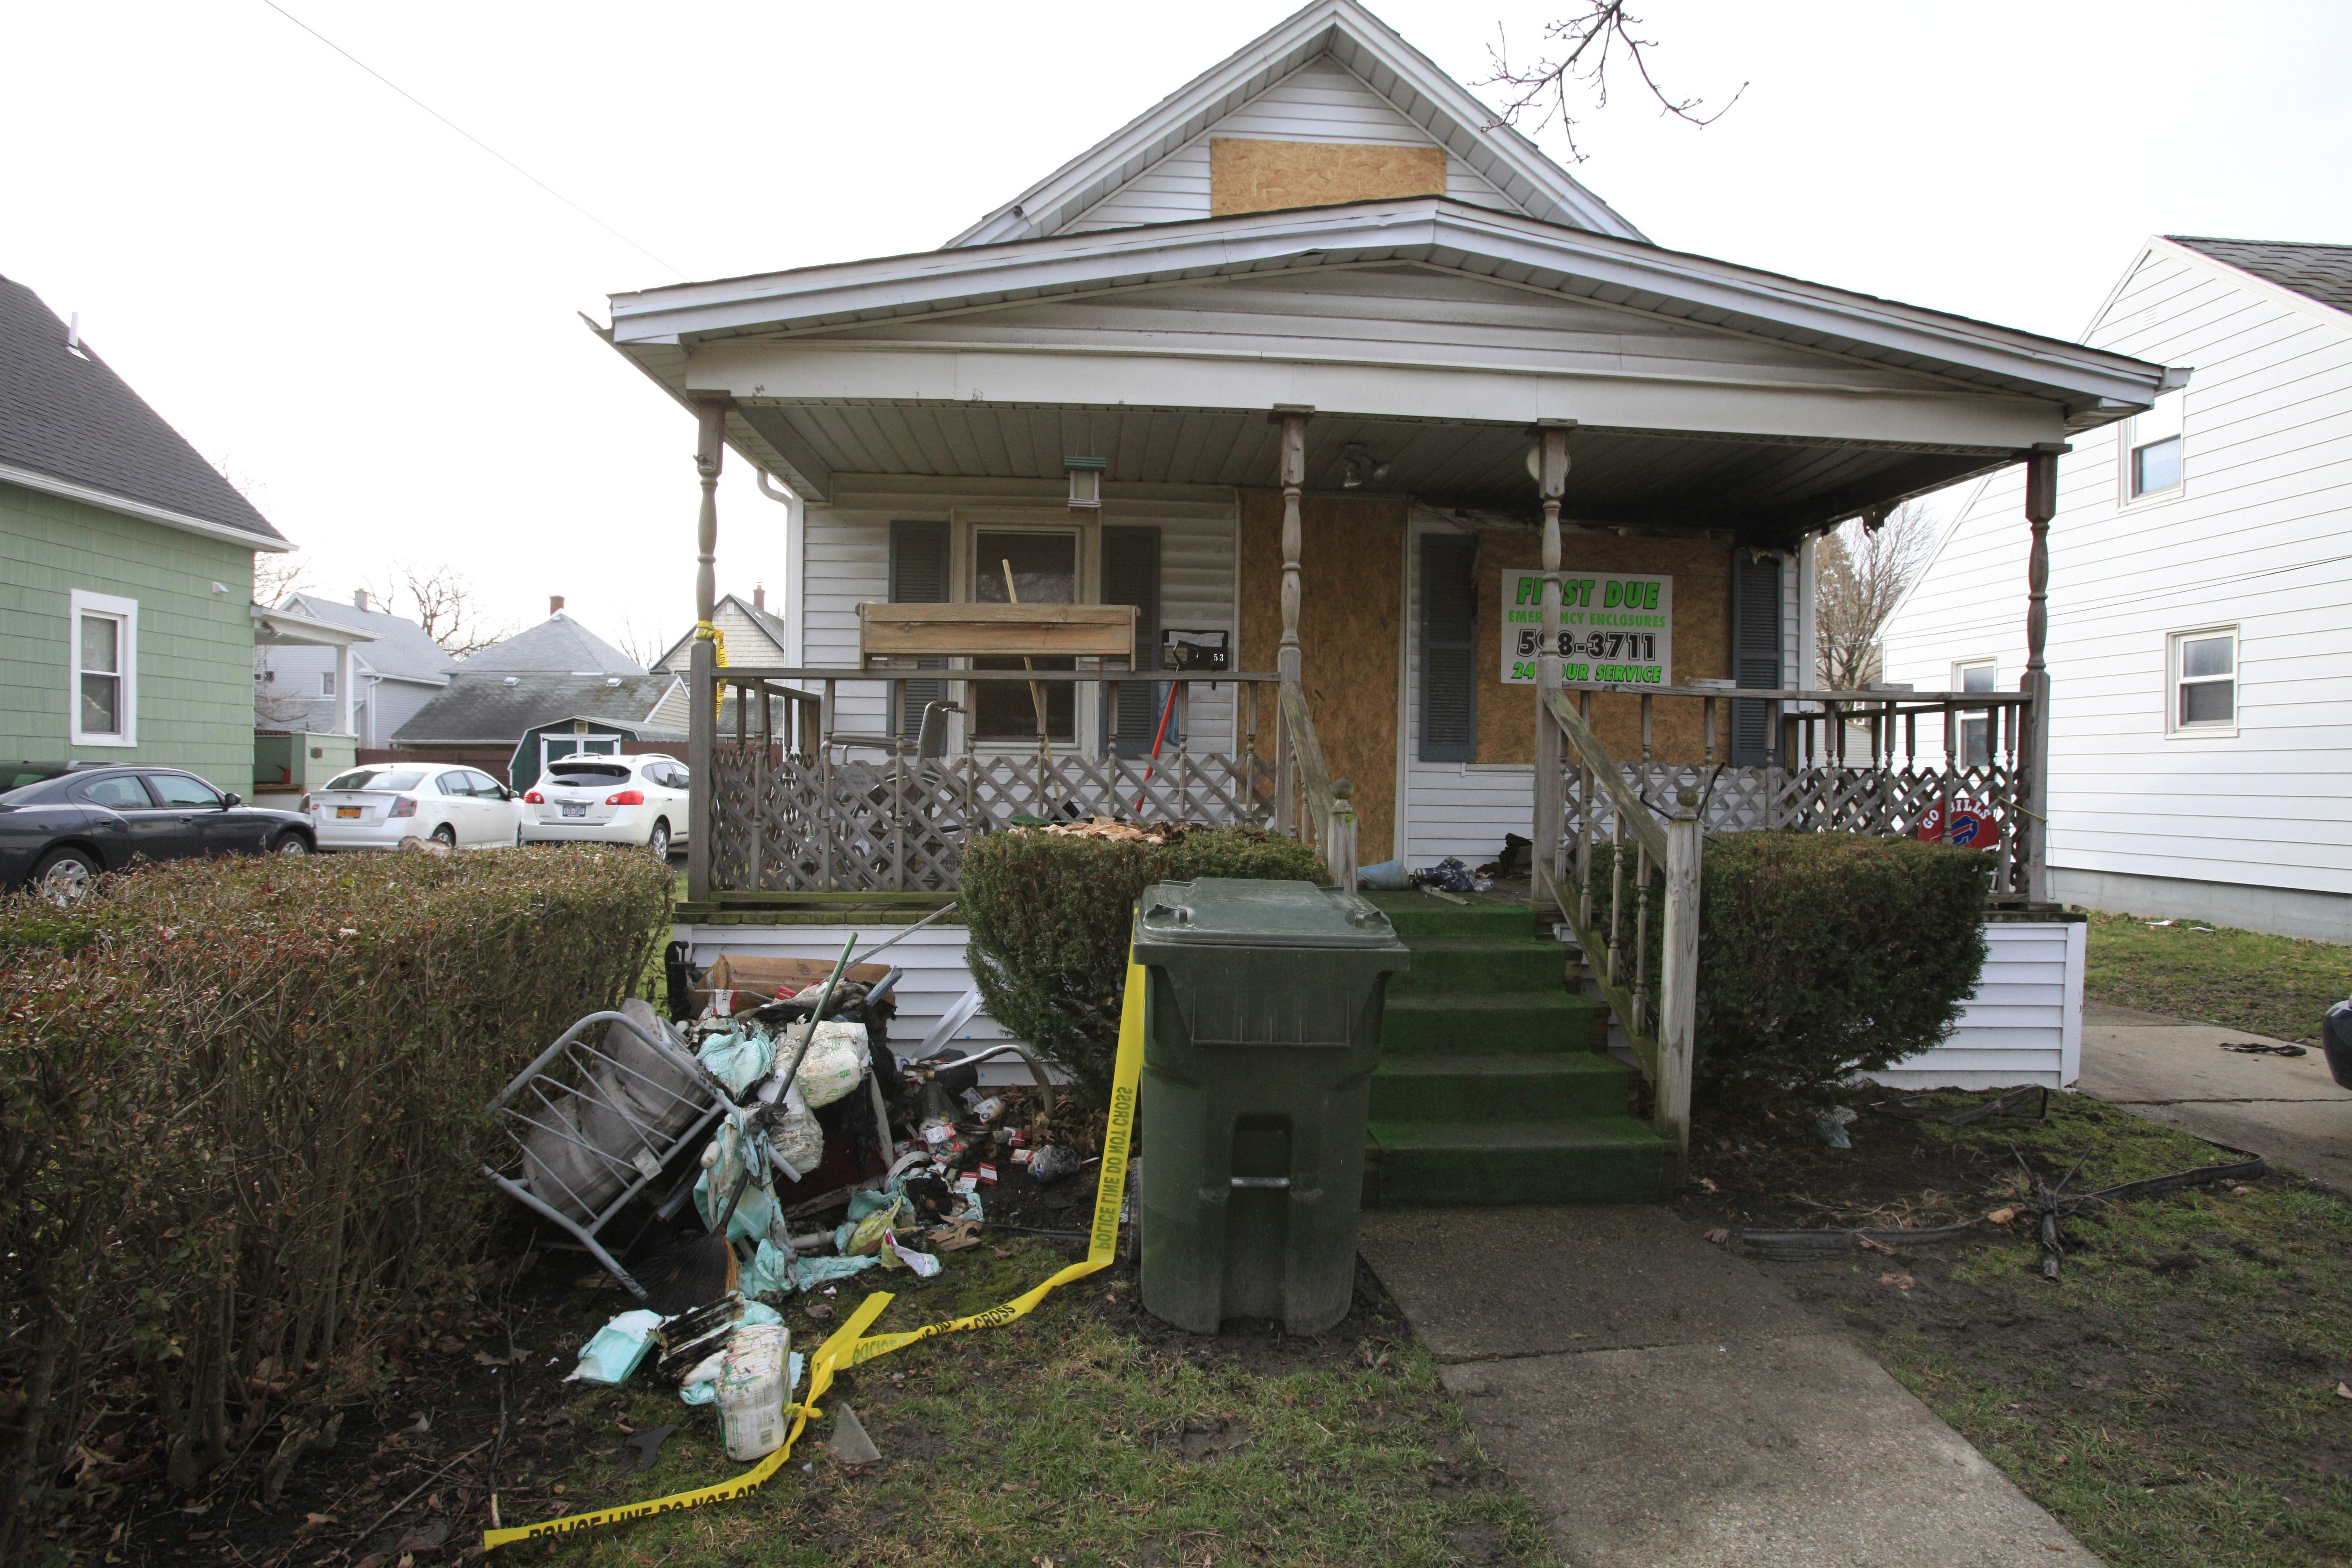 The scene at 53 Third Avenue in North Tonawanda, where a fire claimed two lives late Monday. (Derek Gee/Buffalo News)